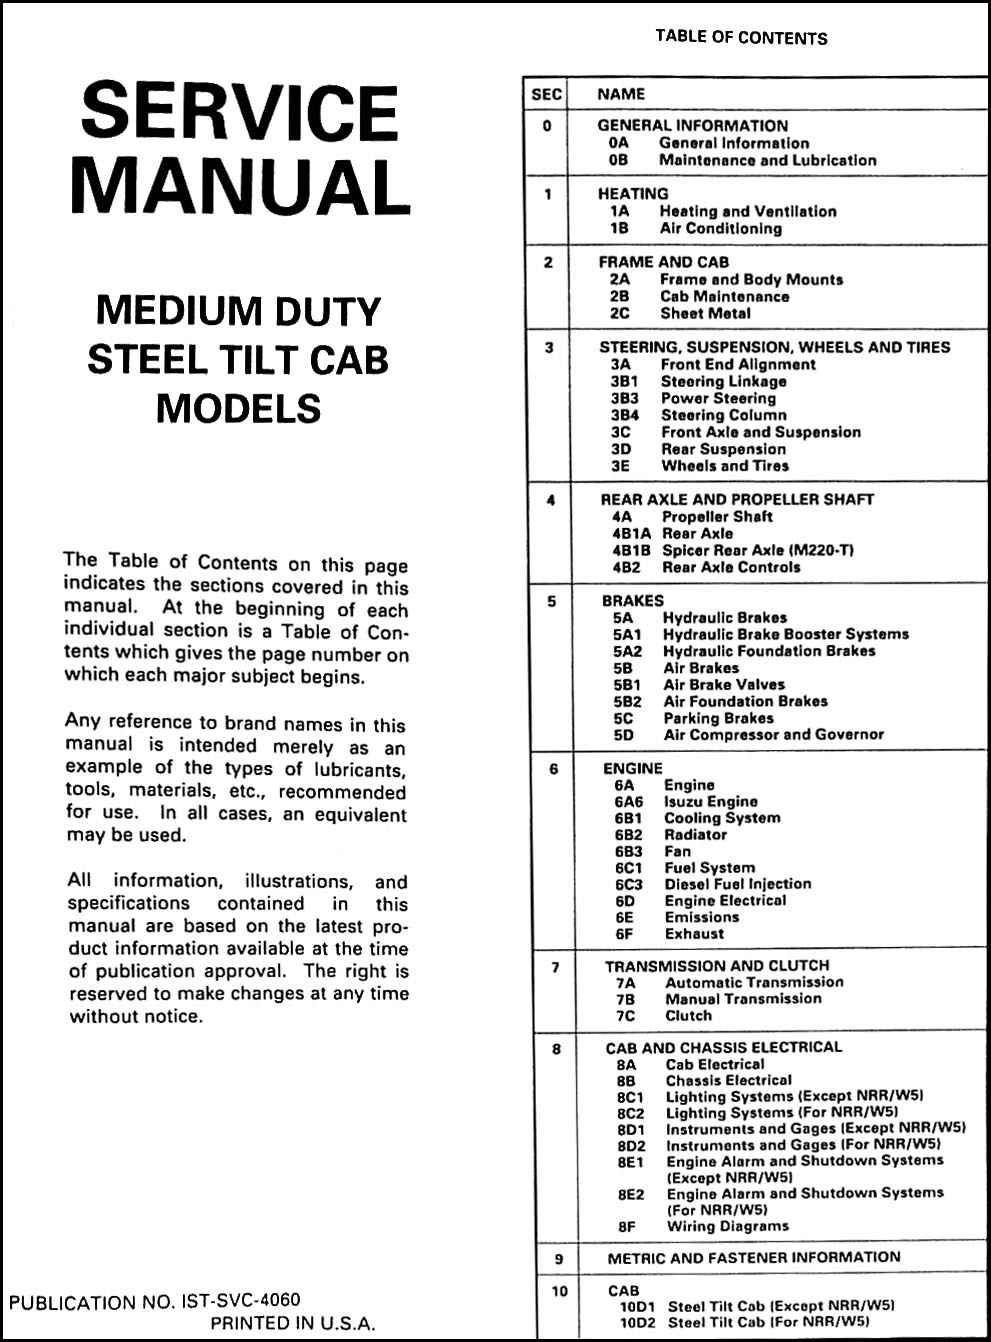 1992IsuzuNRRW7ORM TOC 1992 nrr, fsr, ftr, fvr, evr, w5, w6, w7 repair shop manual original isuzu npr wiring diagram free download at gsmx.co